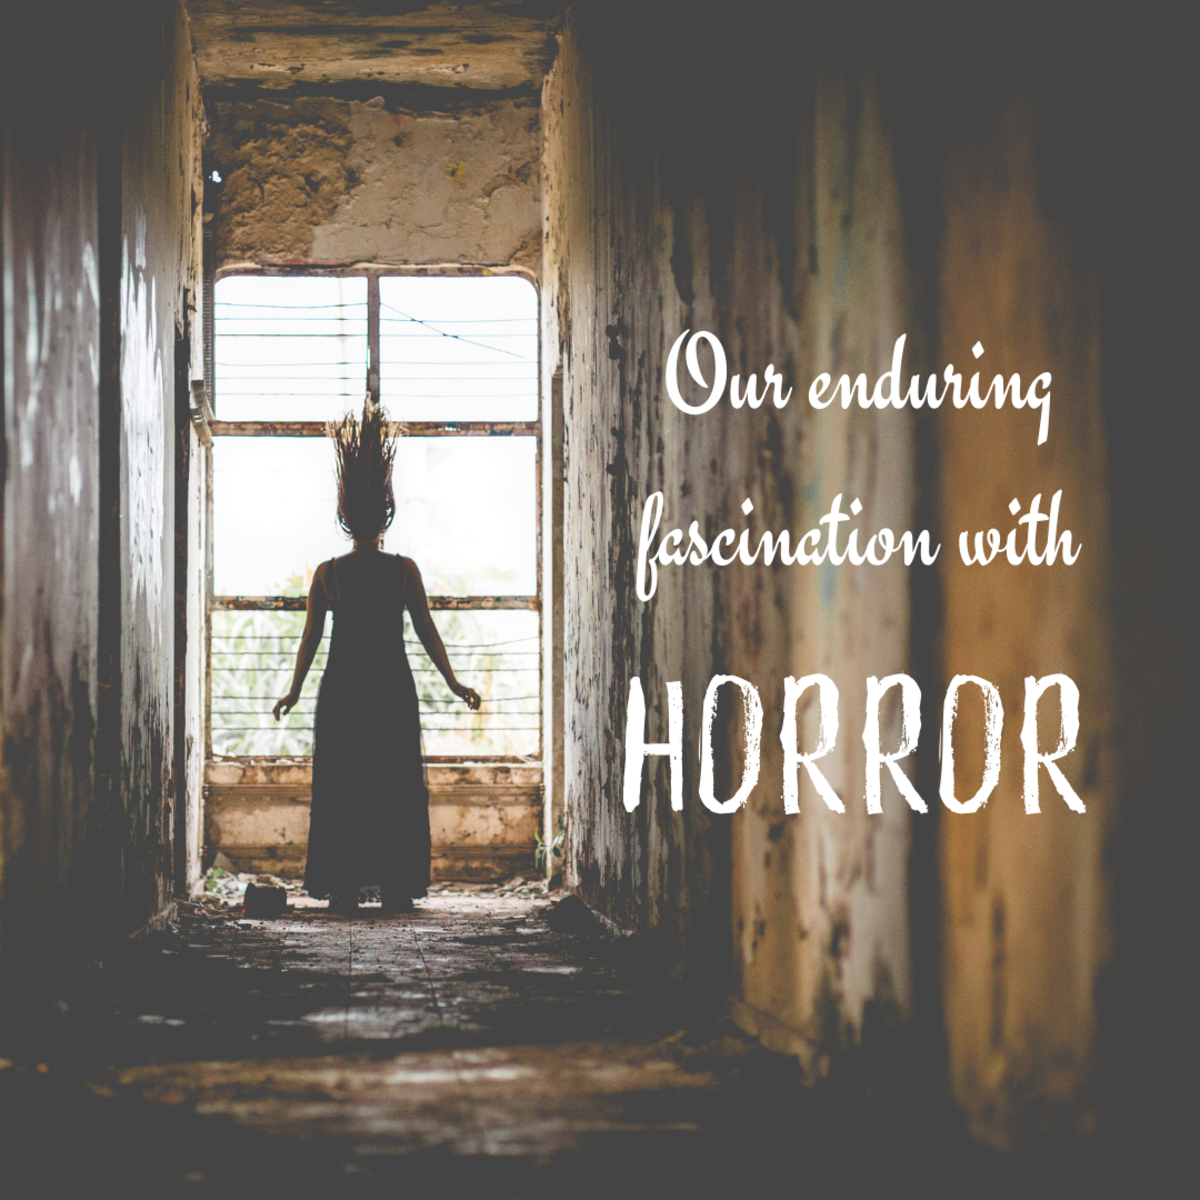 Why are we so attracted to horror?